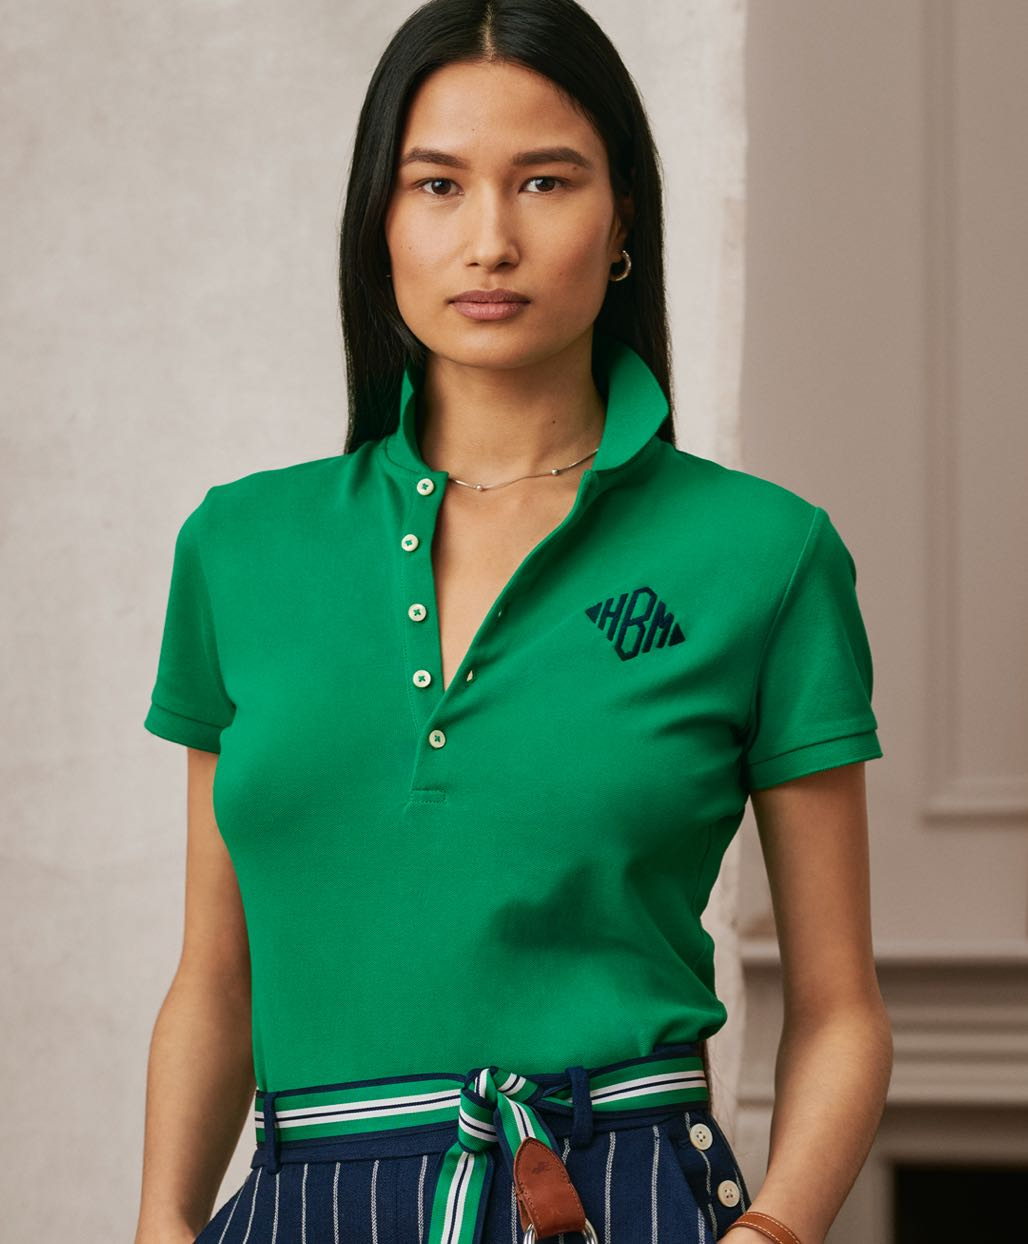 Woman in green Polo shirt with navy embroidered monogram